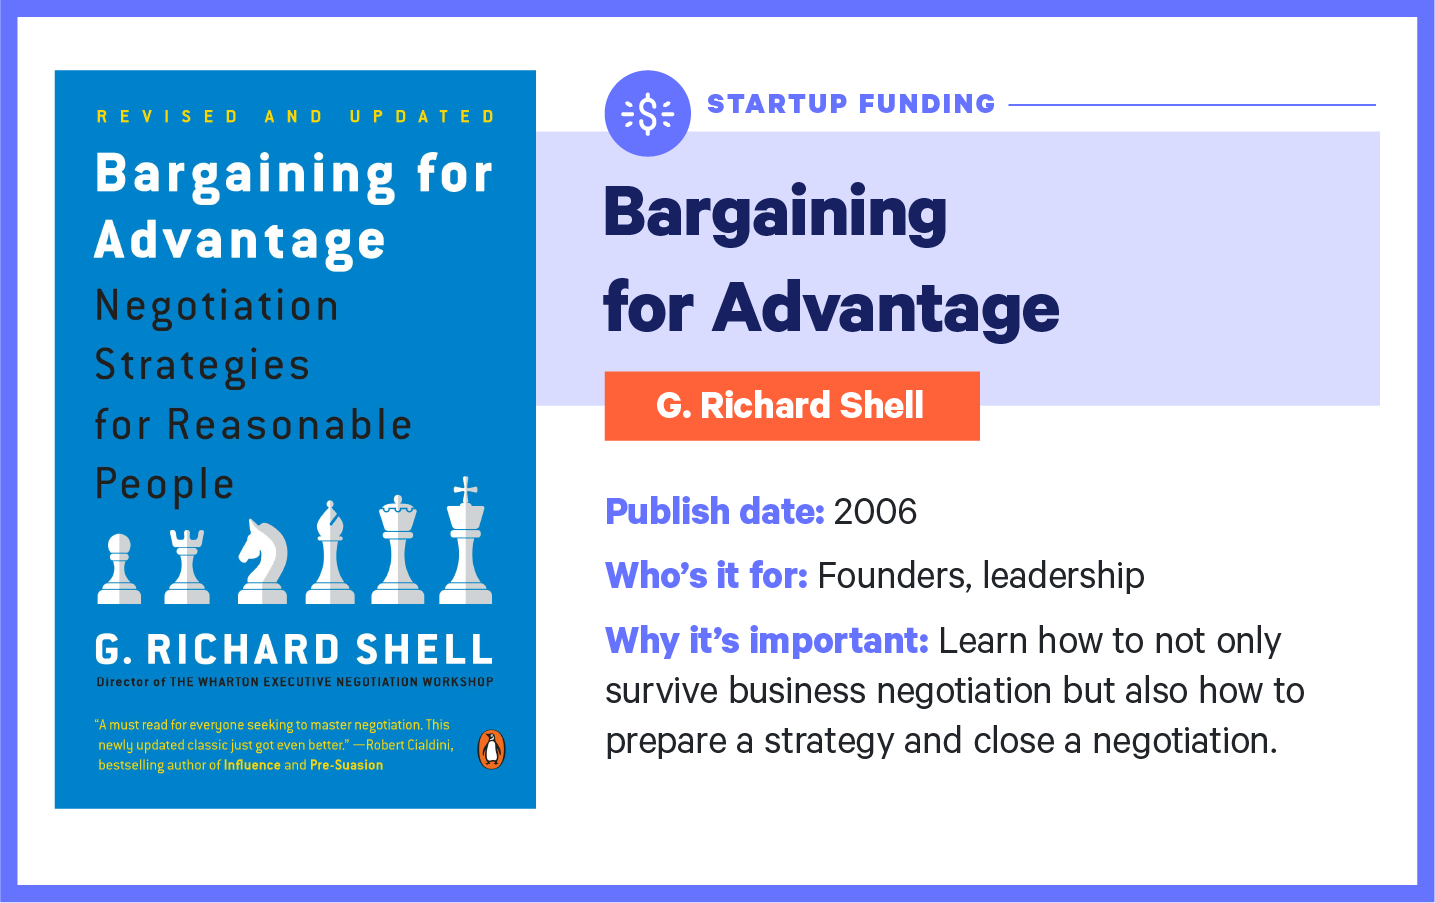 bargaining for advantage book